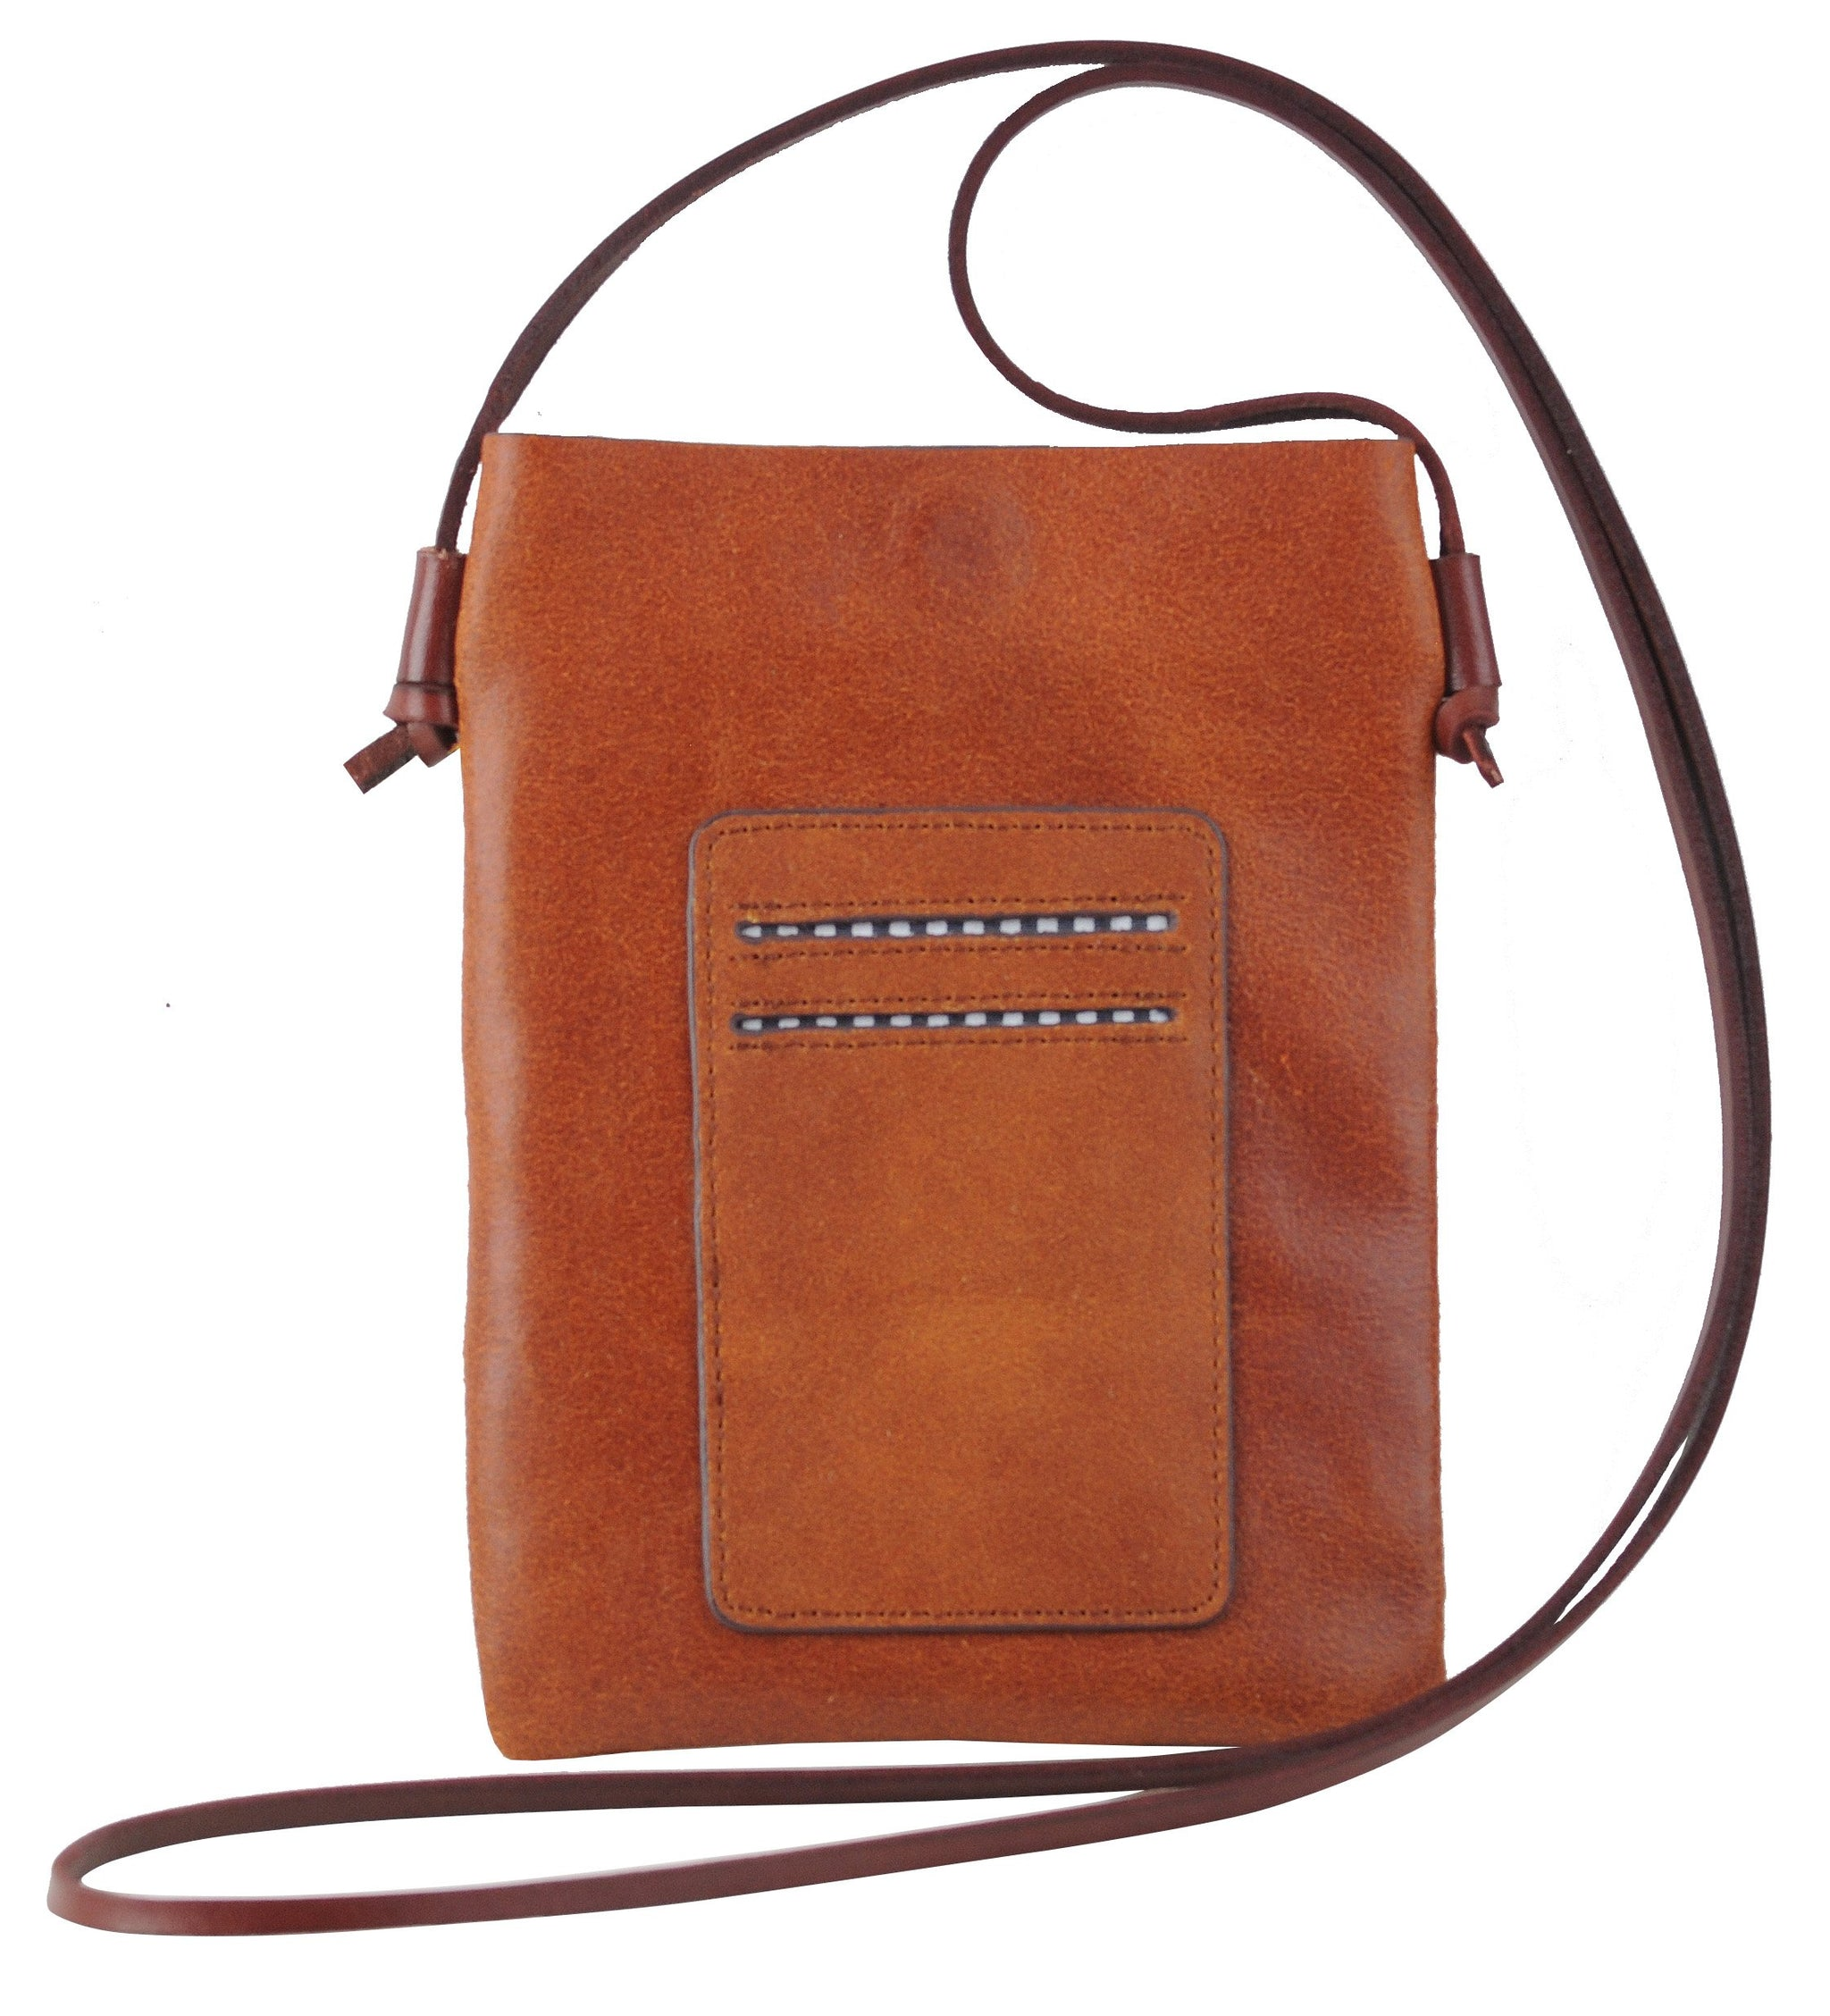 Tan Leather Ready To Go Crossbody Purse